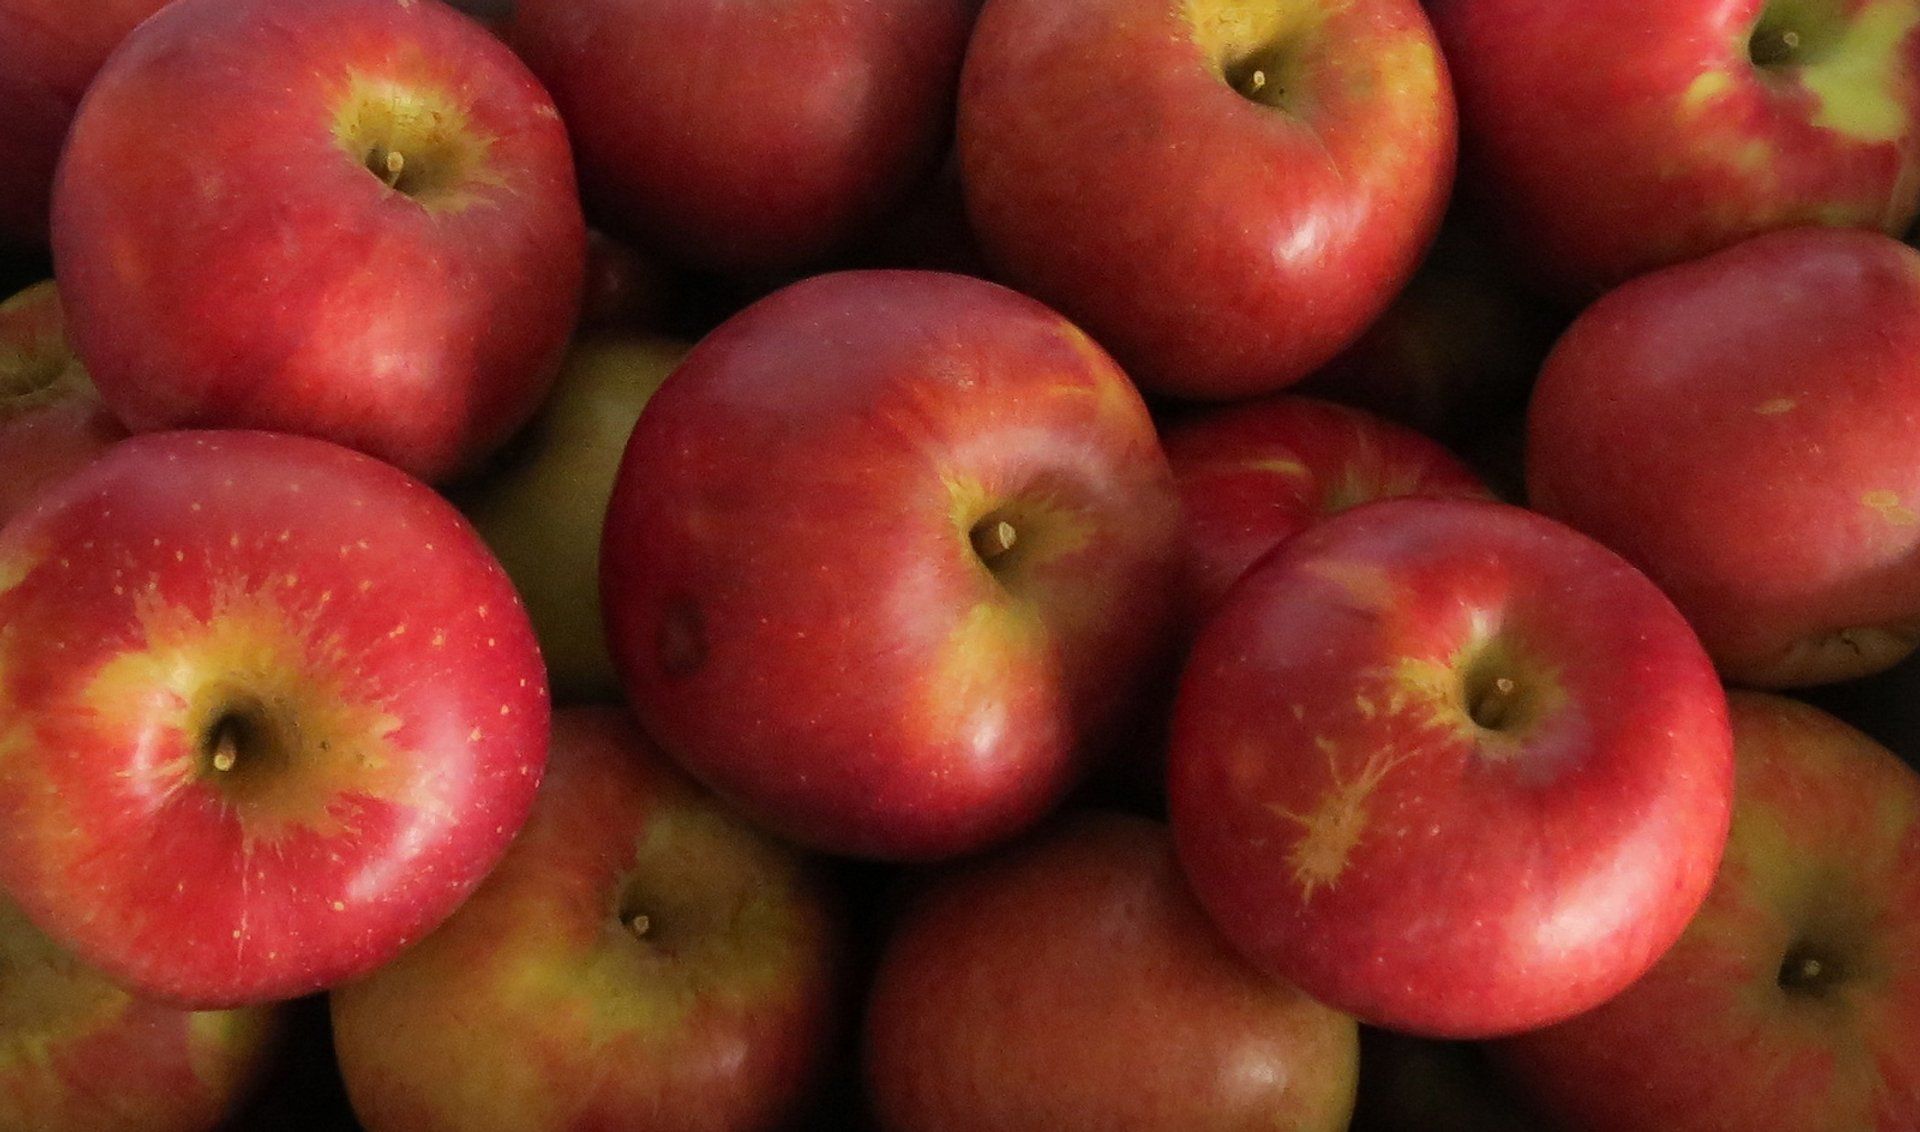 UBC Apple Festival in Vancouver - Best Season 2020